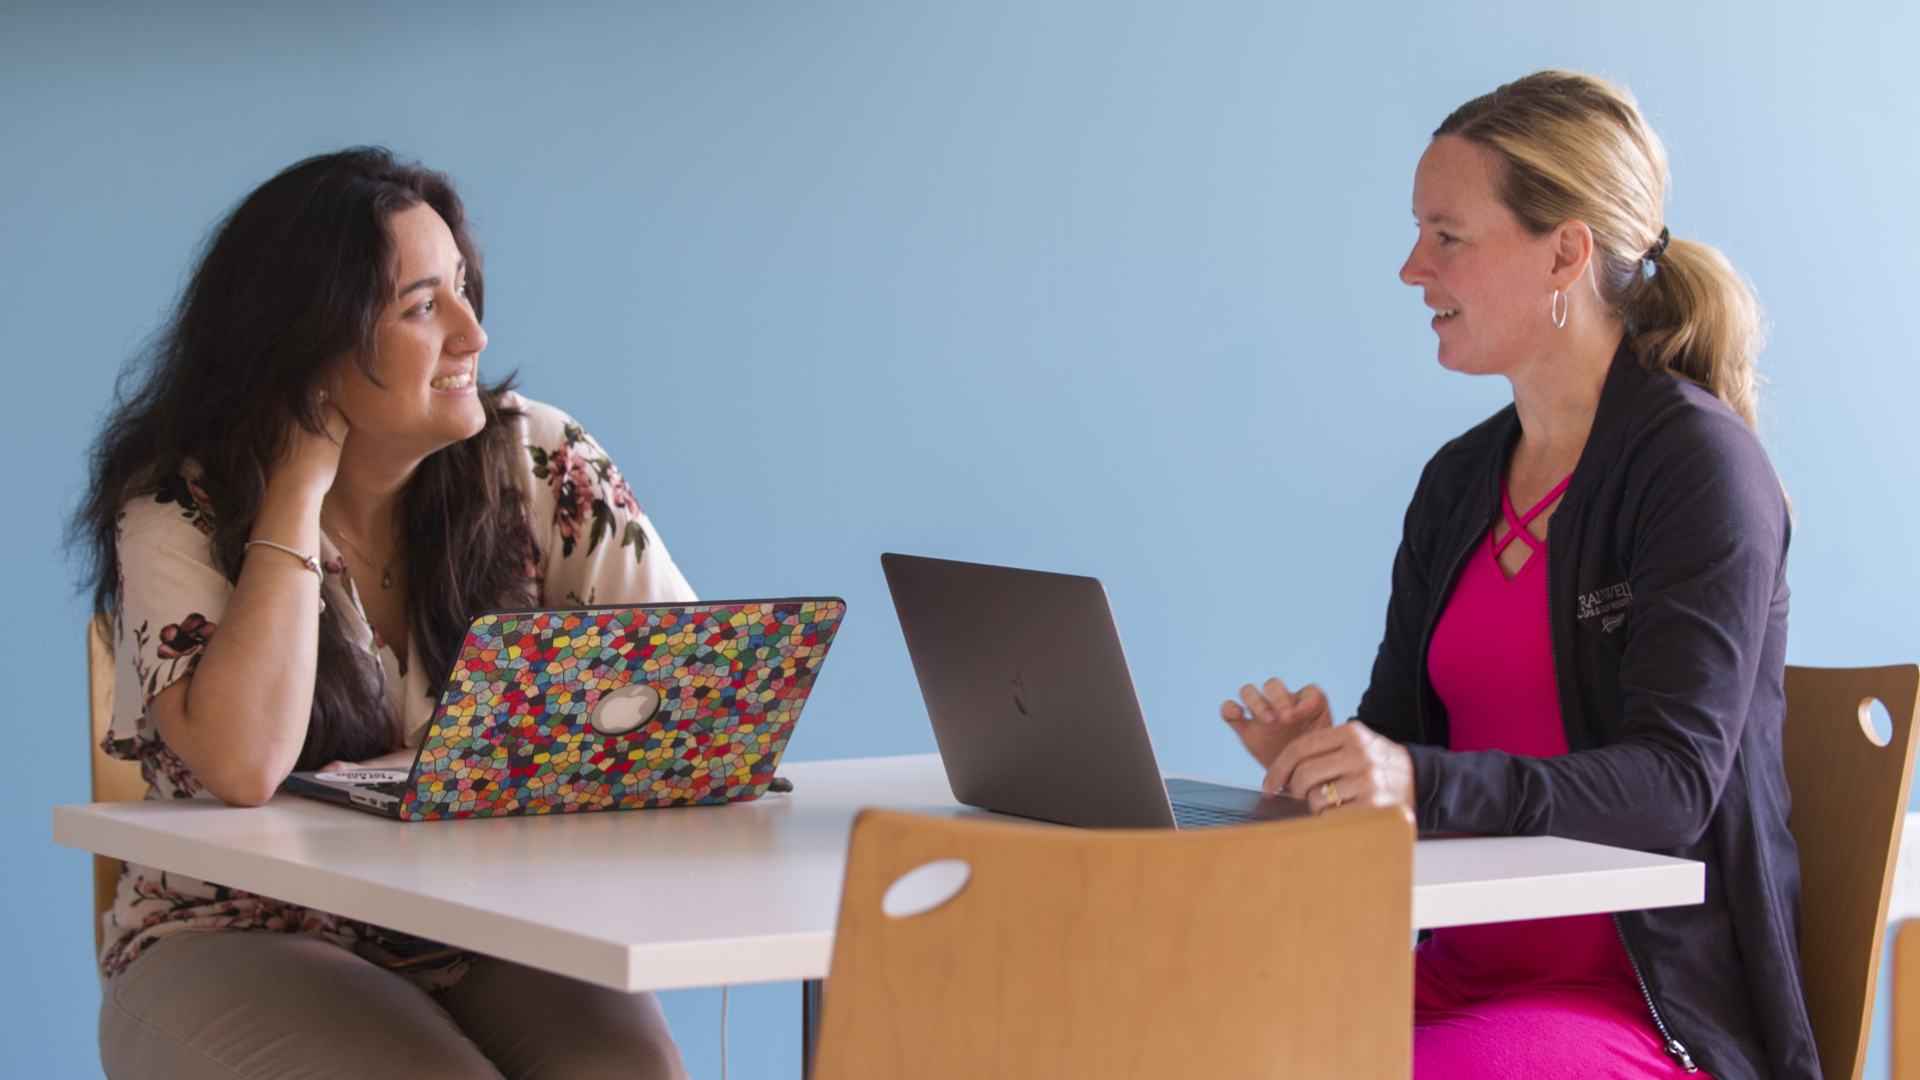 Two students talking while working on laptops